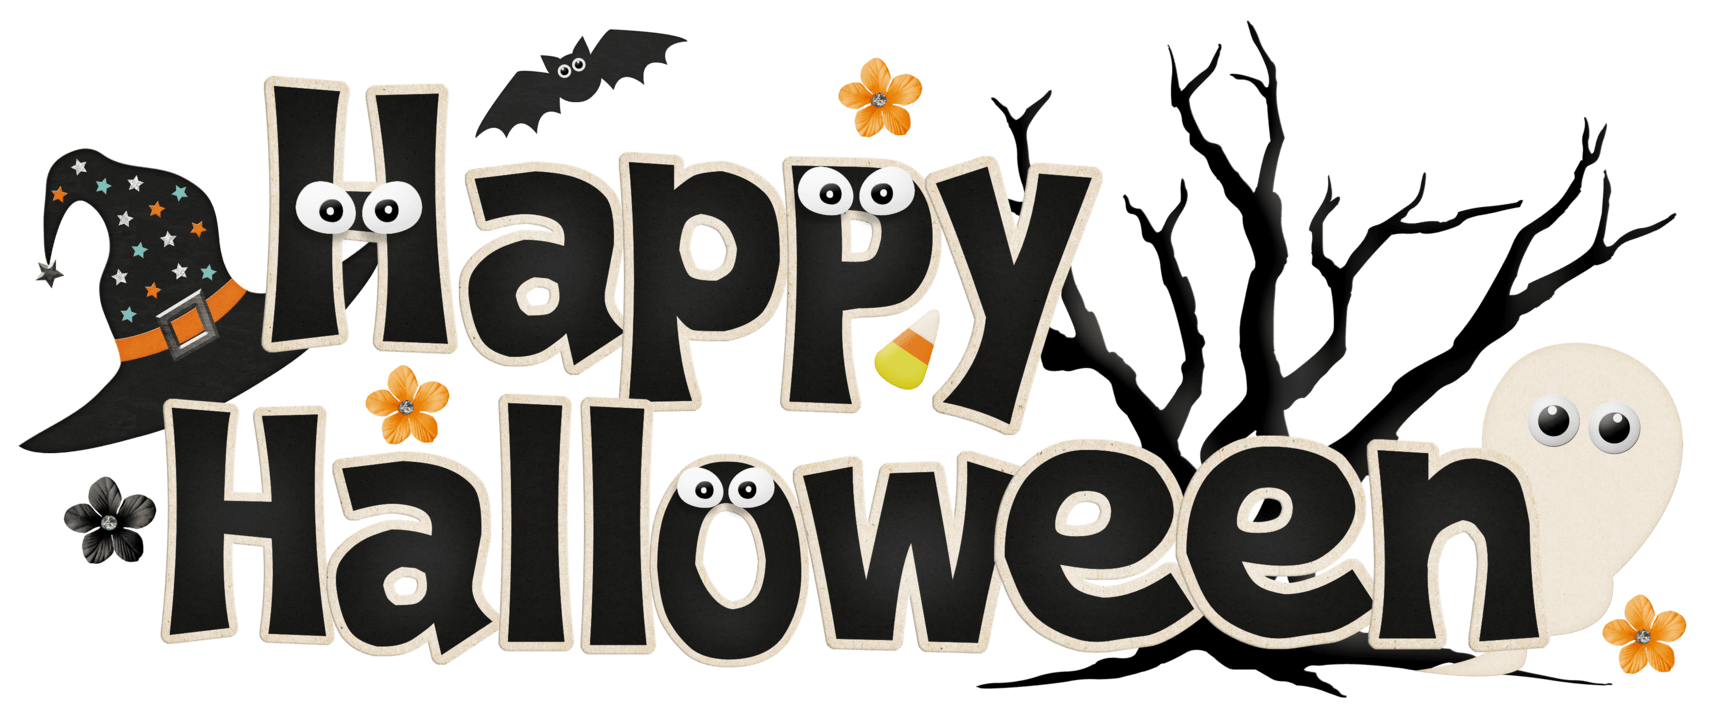 Happy halloween background png. Funny banner photos